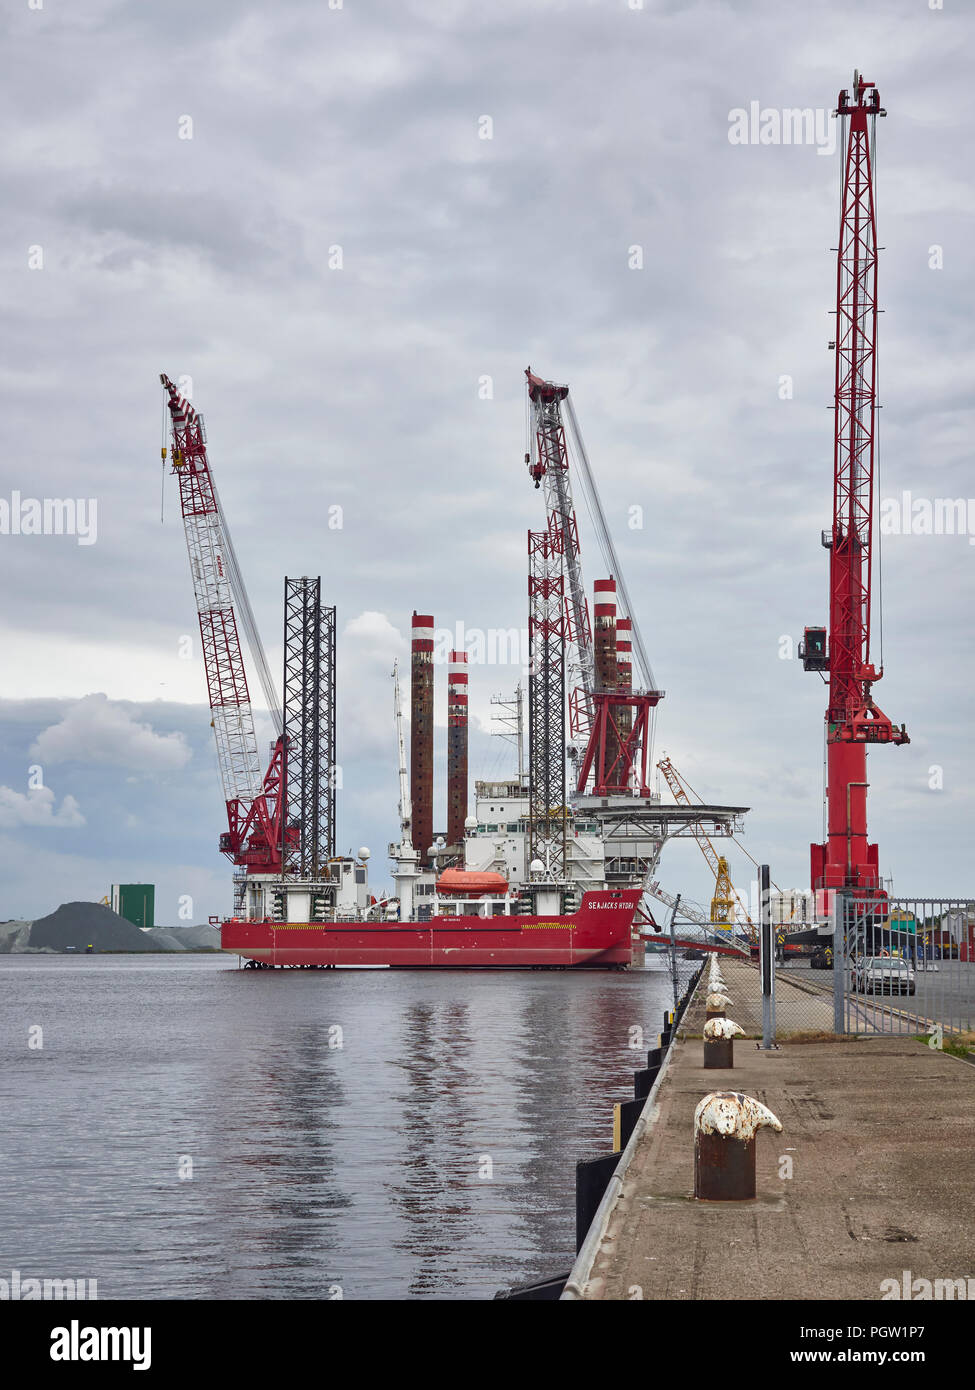 The Seajacks Hydra, a self Propelled multipurpose Jack Up Barge moored alongside Den Haag Container Port in Amsterdam. - Stock Image